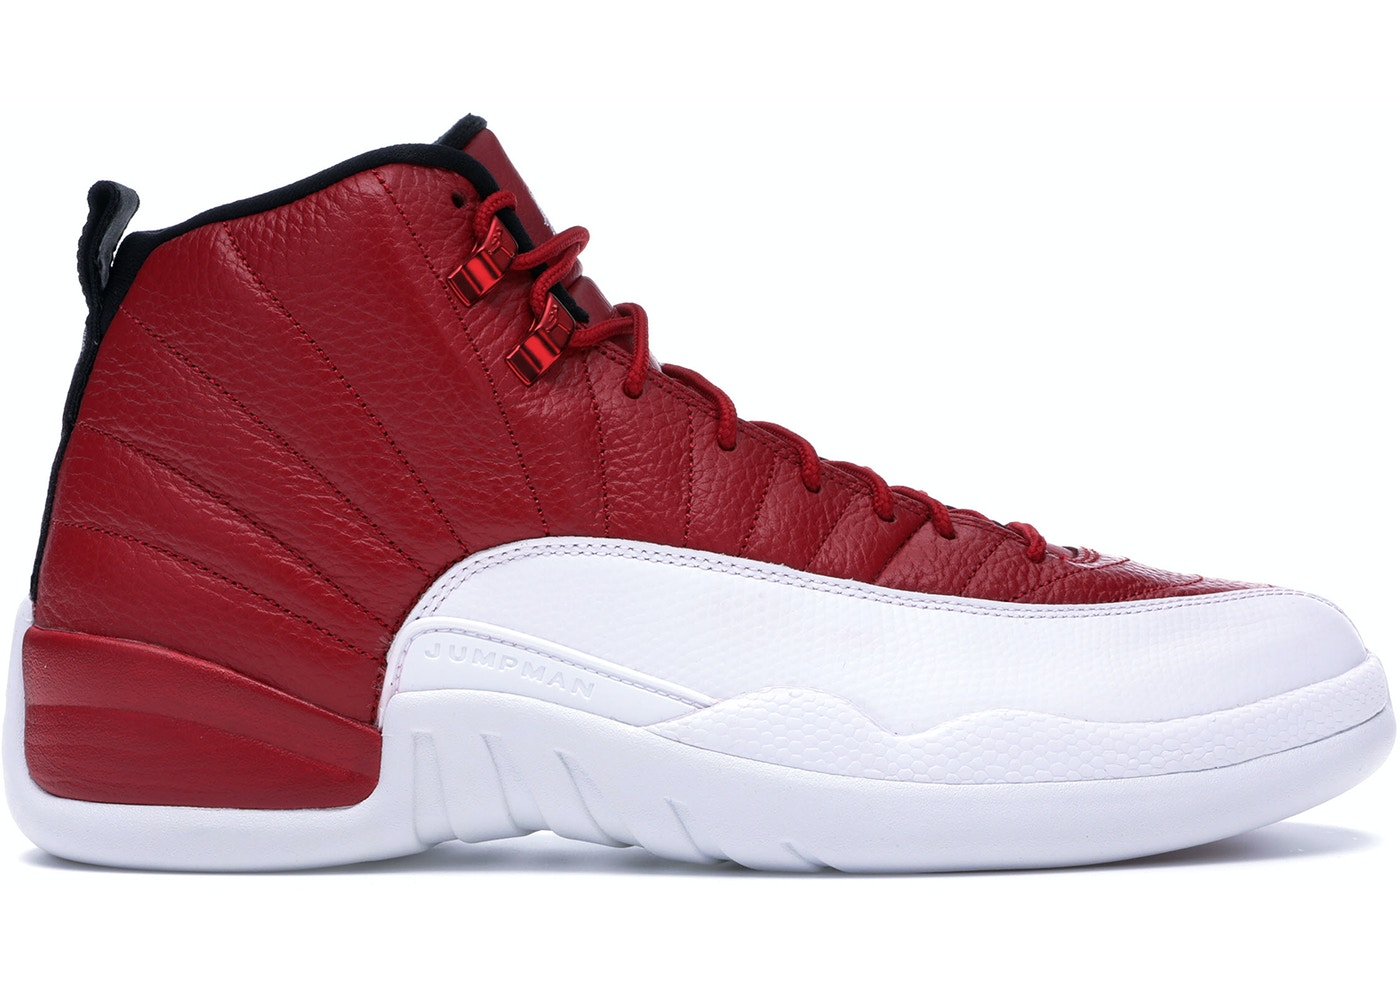 cae6a05b21b Buy Air Jordan 12 Shoes & Deadstock Sneakers